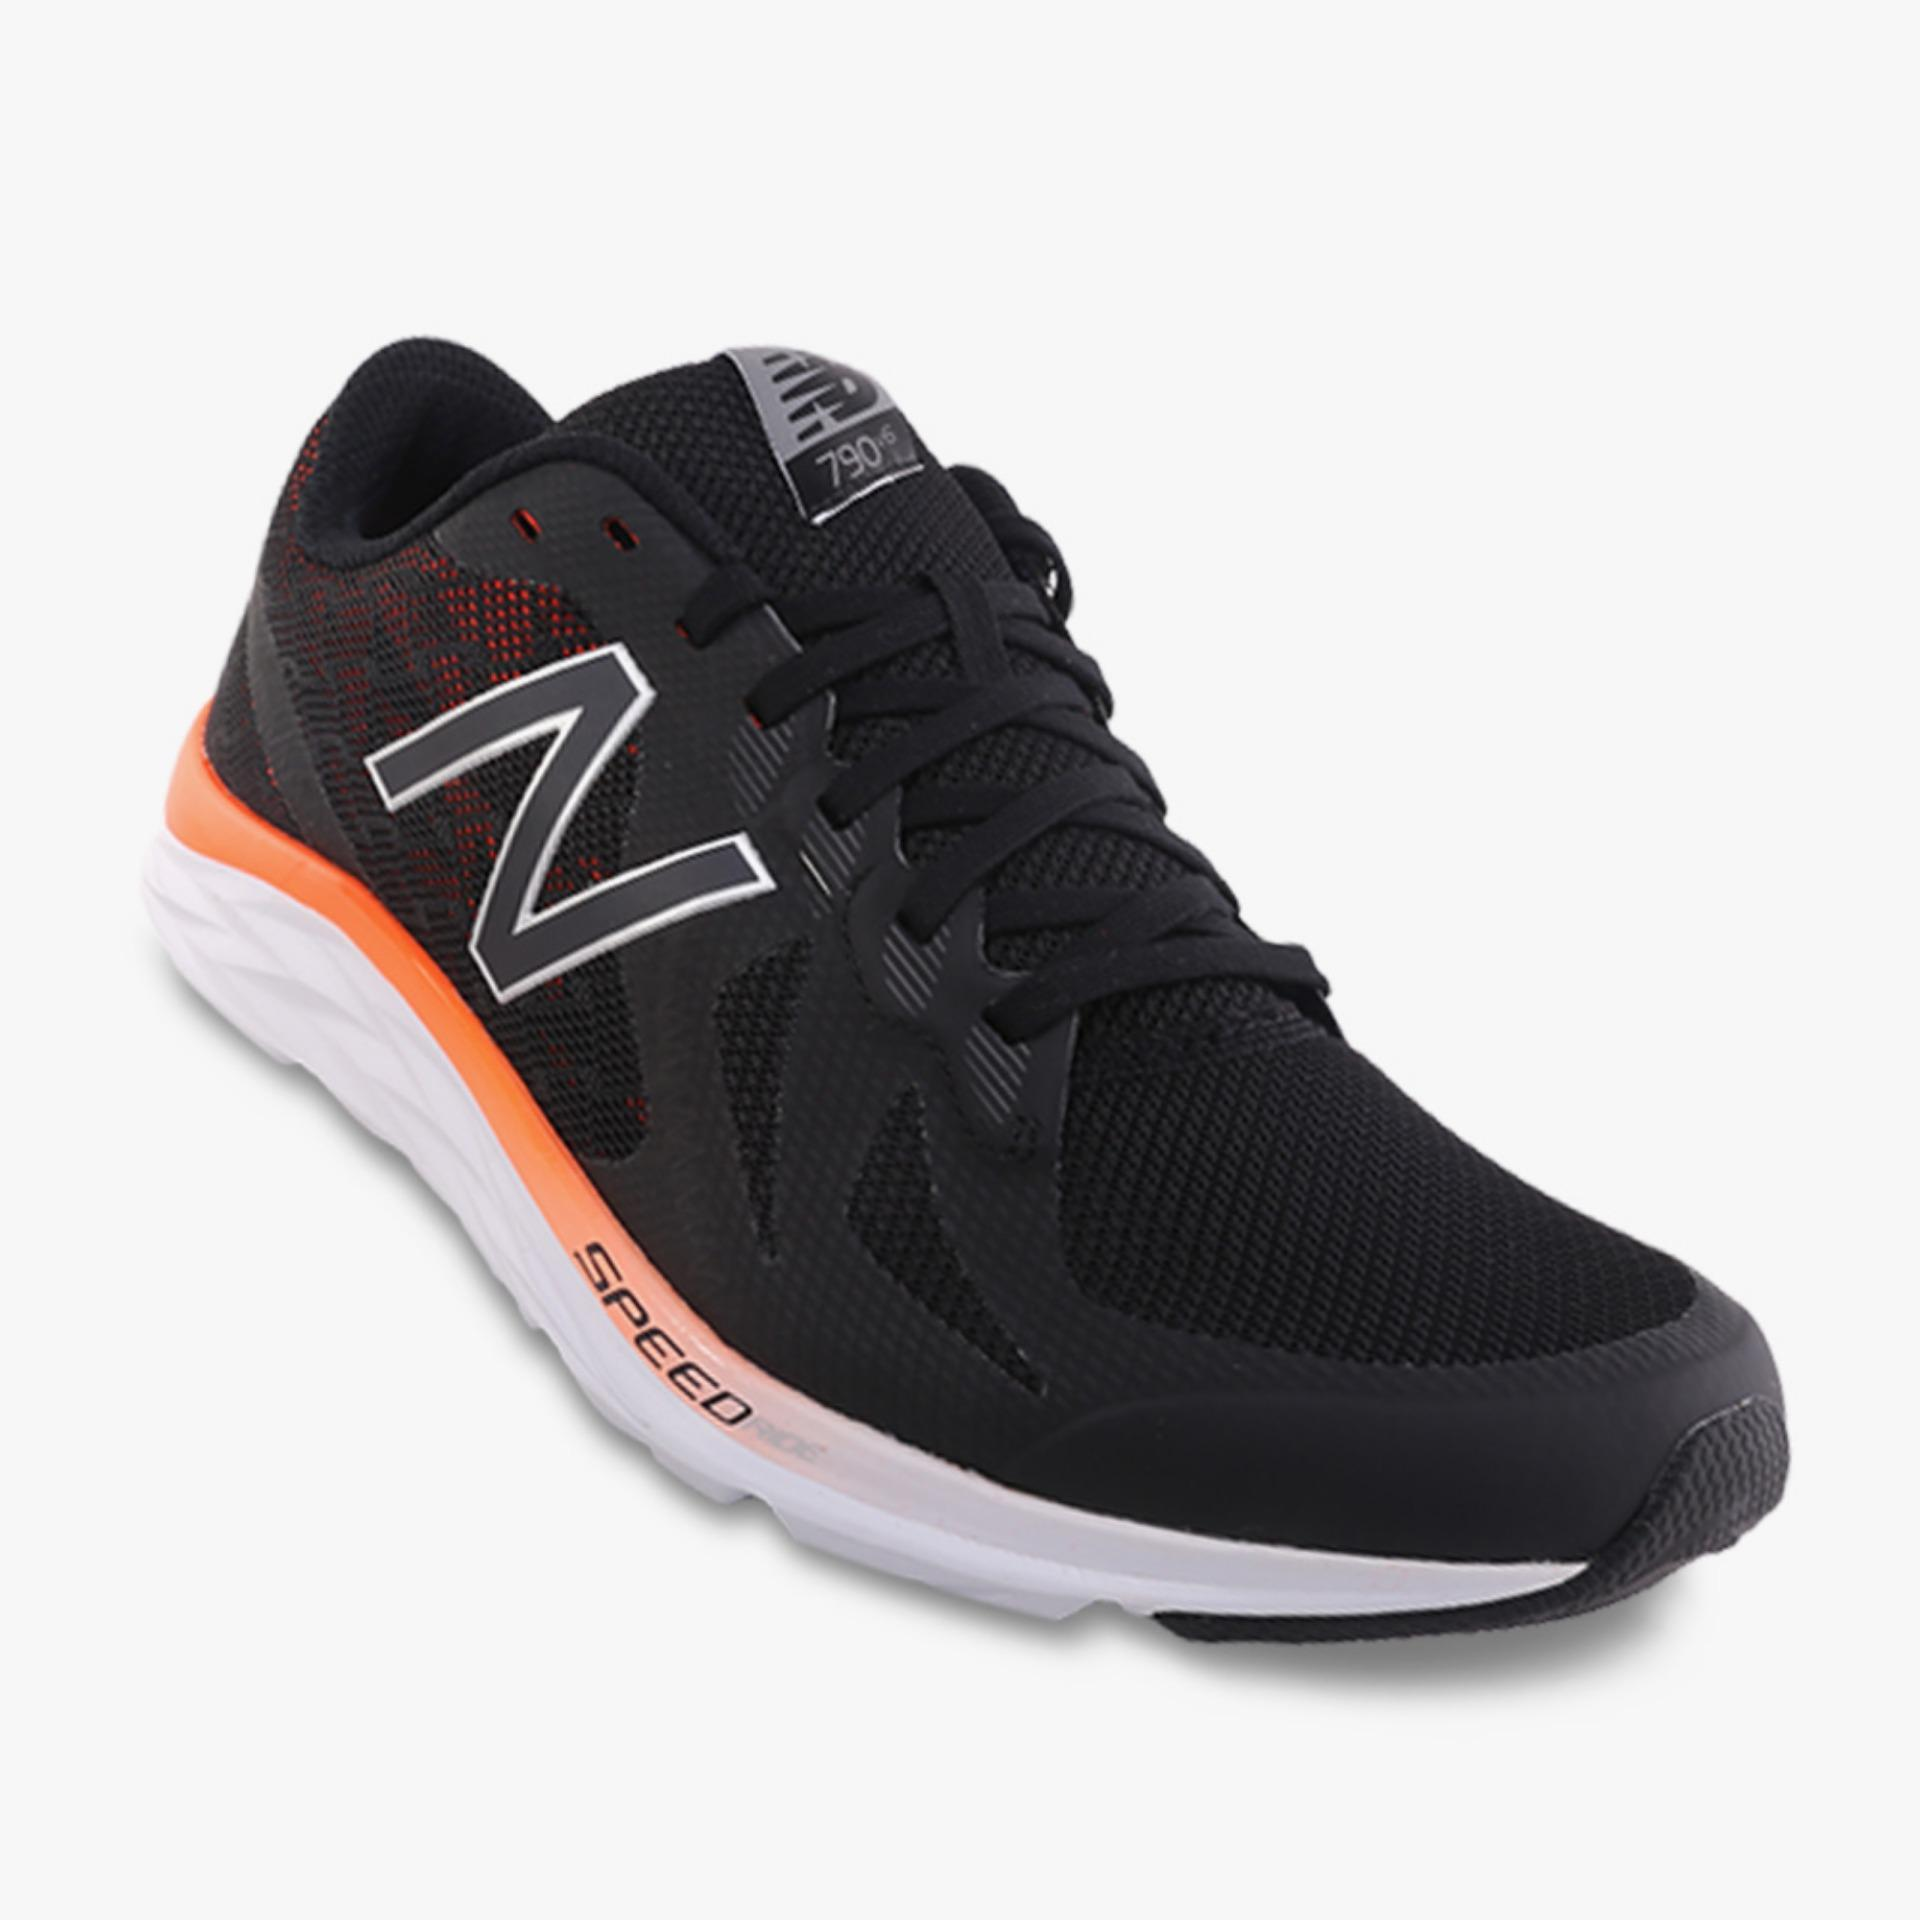 Harga New Balance Speed Ride 790 Men S Running Shoes Hitam Paling Murah